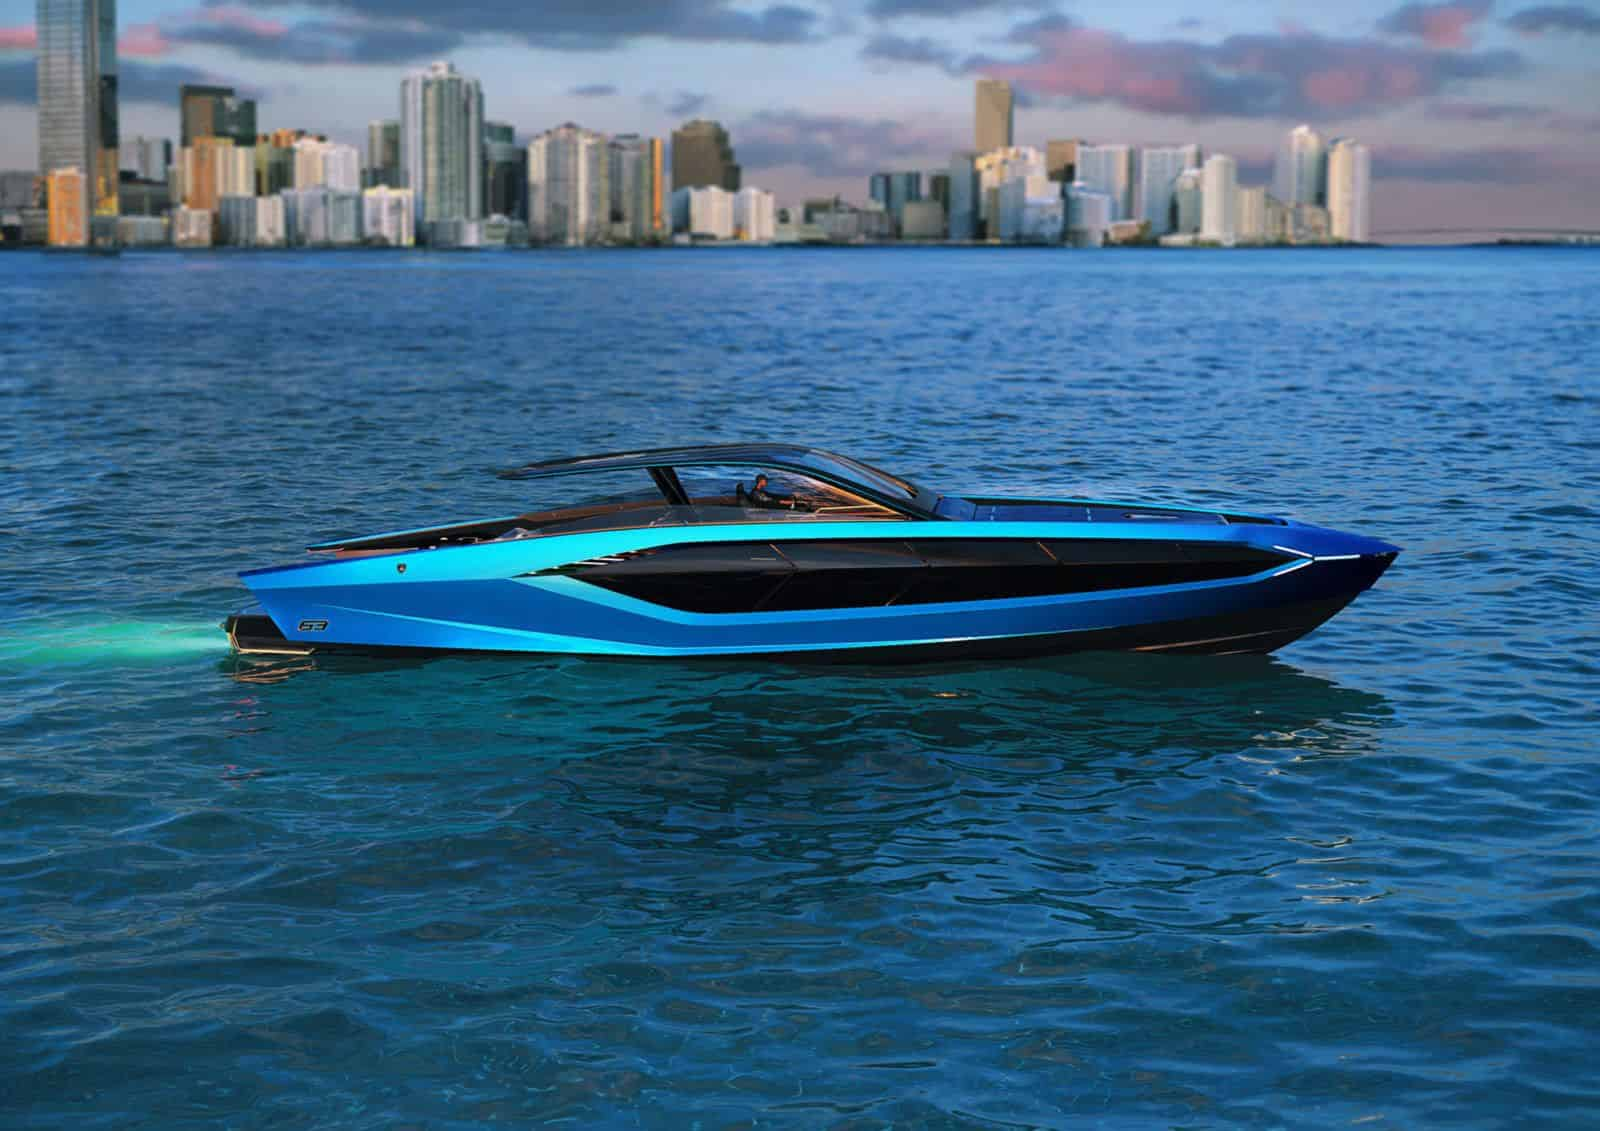 Lamborghini 63, the brand new Tecnomar hyper yacht will amaze you